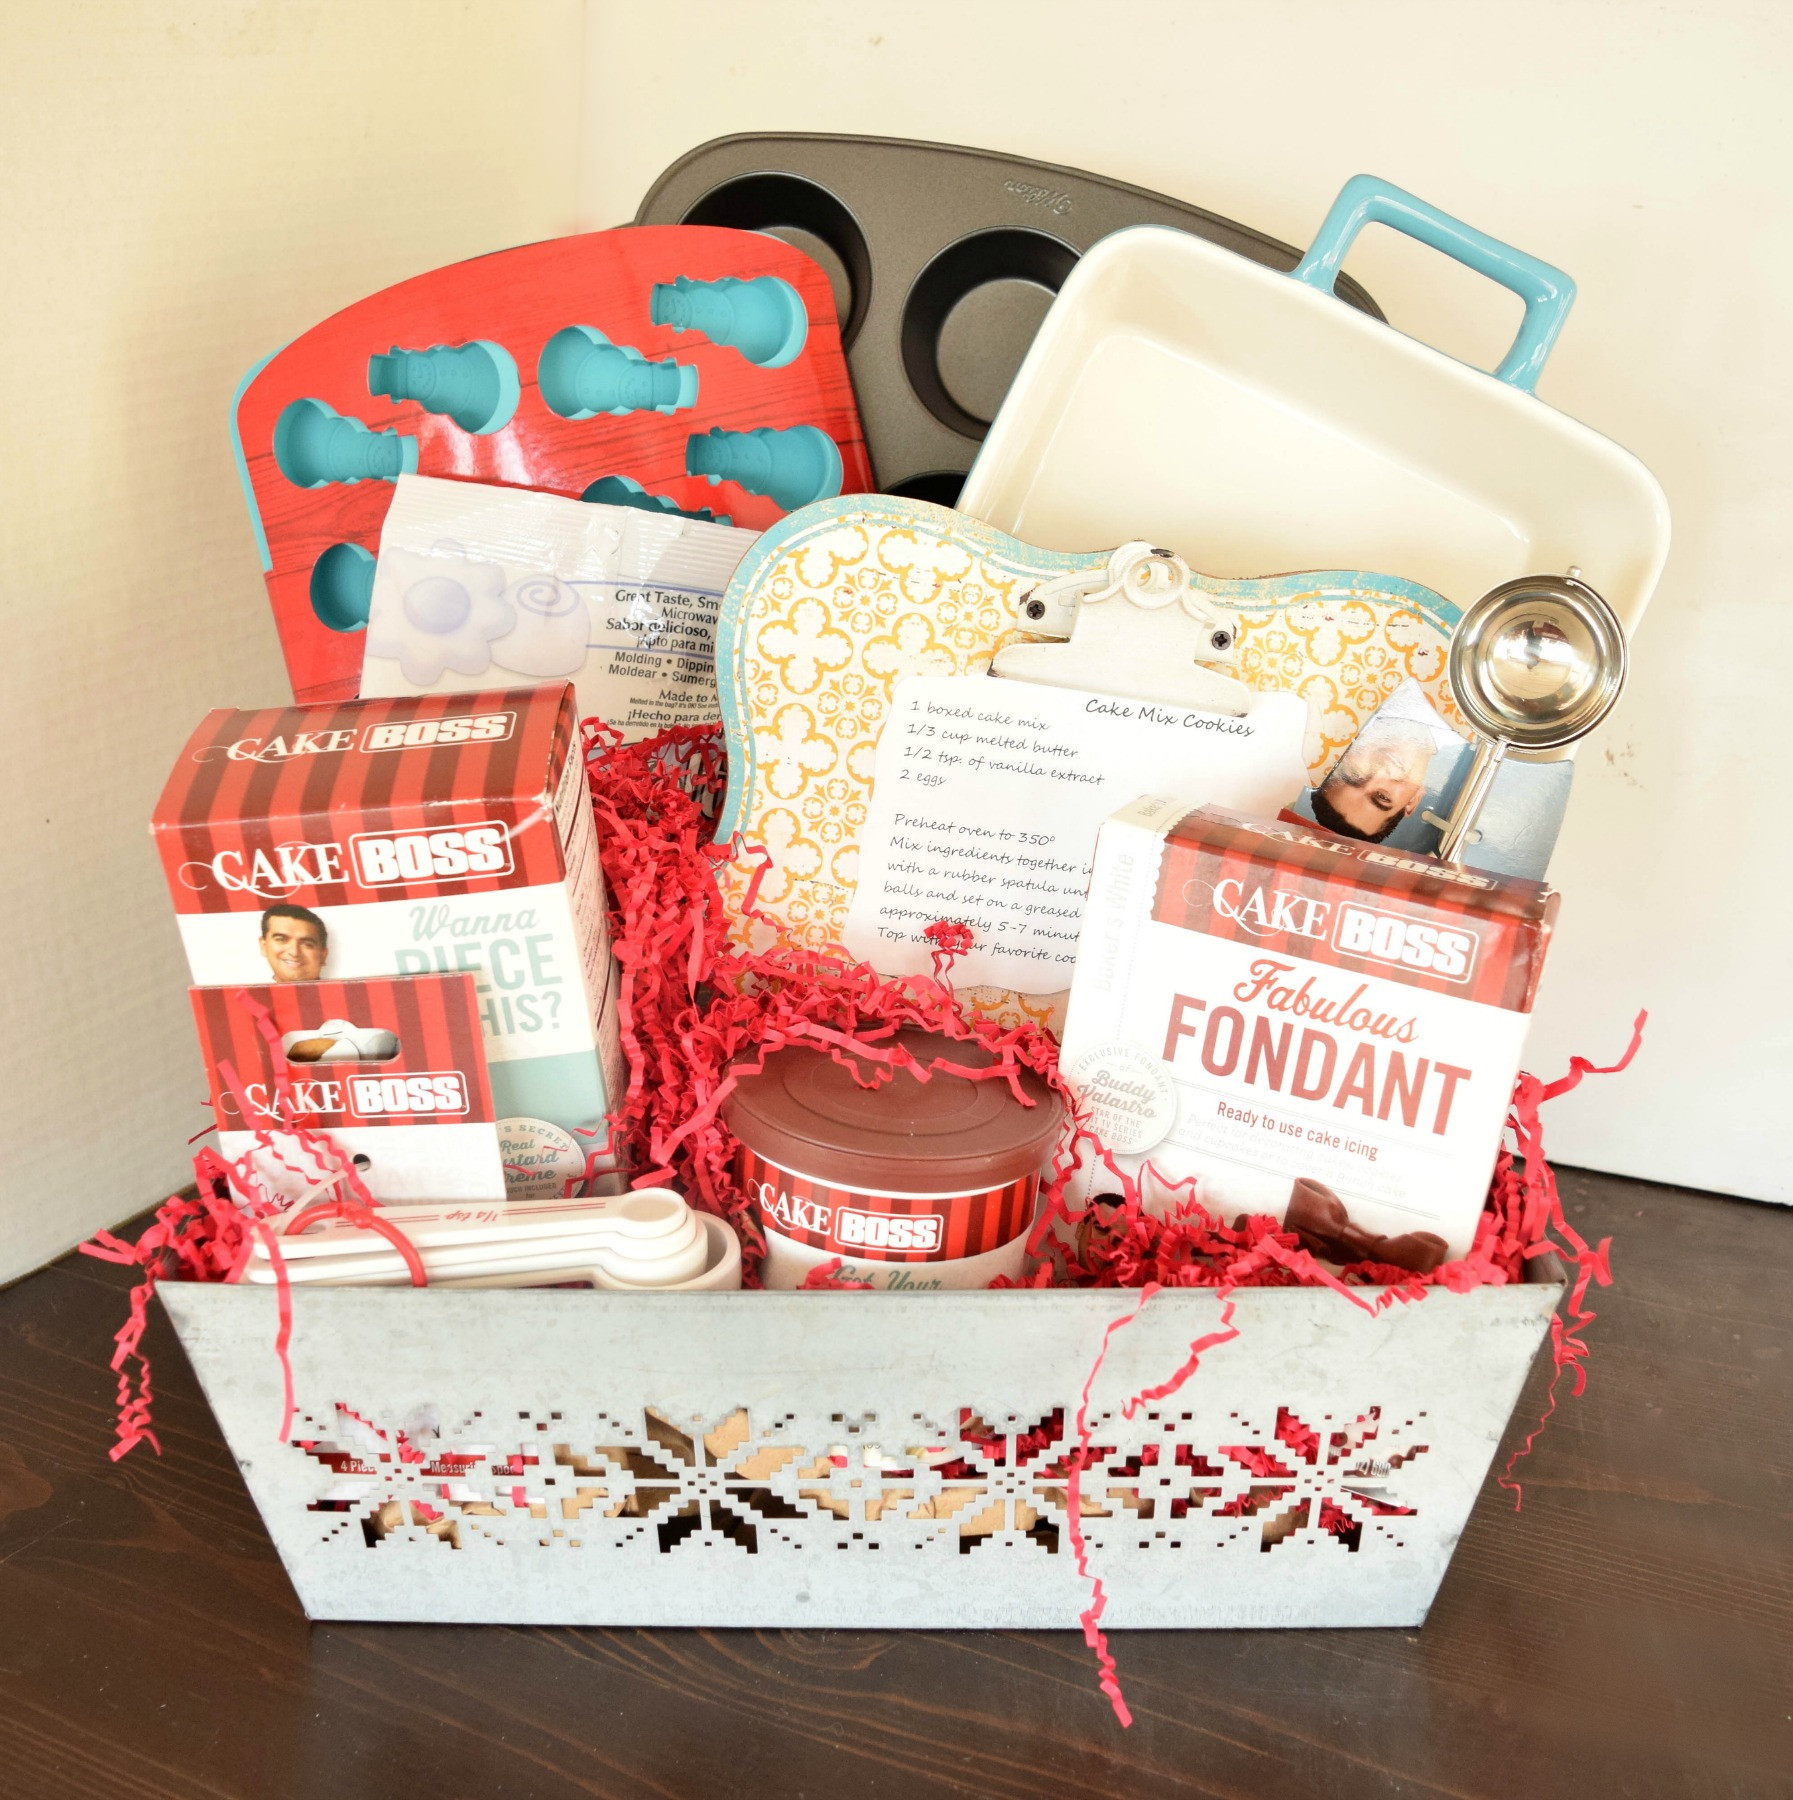 Best ideas about Baker Gift Ideas . Save or Pin 3 DIY Gift Basket Ideas Now.